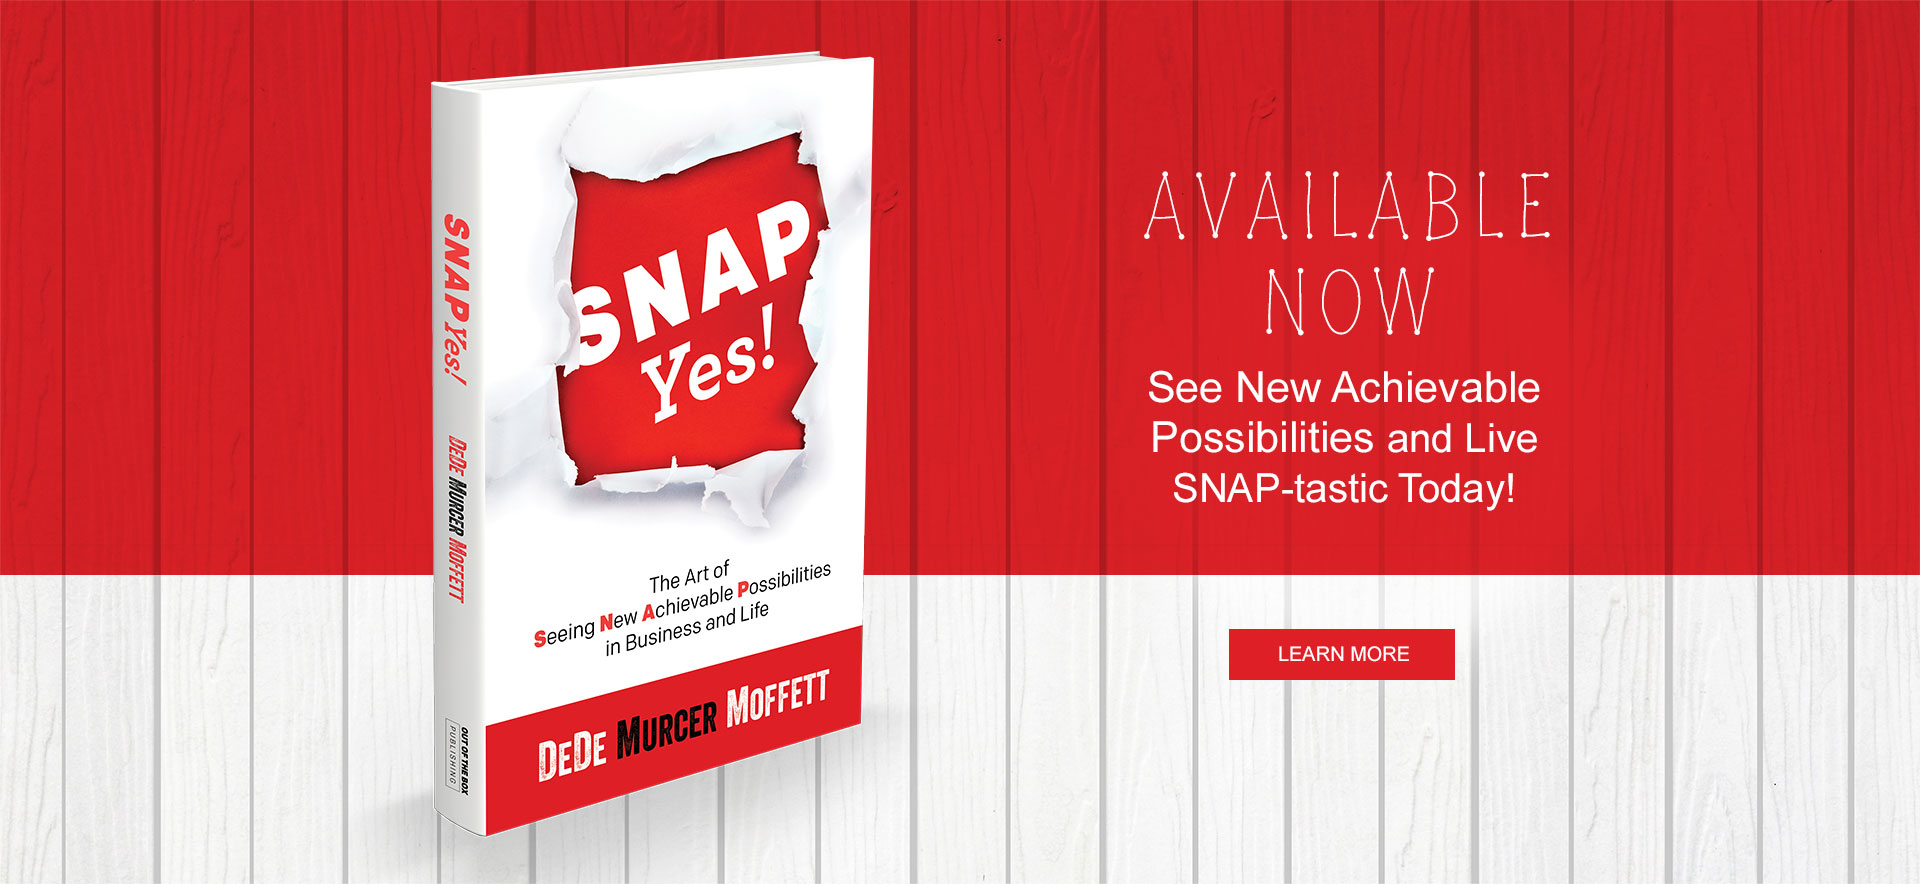 Keynote Speaker DeDe Murcer Moffett SNAP Yes - See New Achievable Possibilities in Business and Life Purchase SNAP Yes book